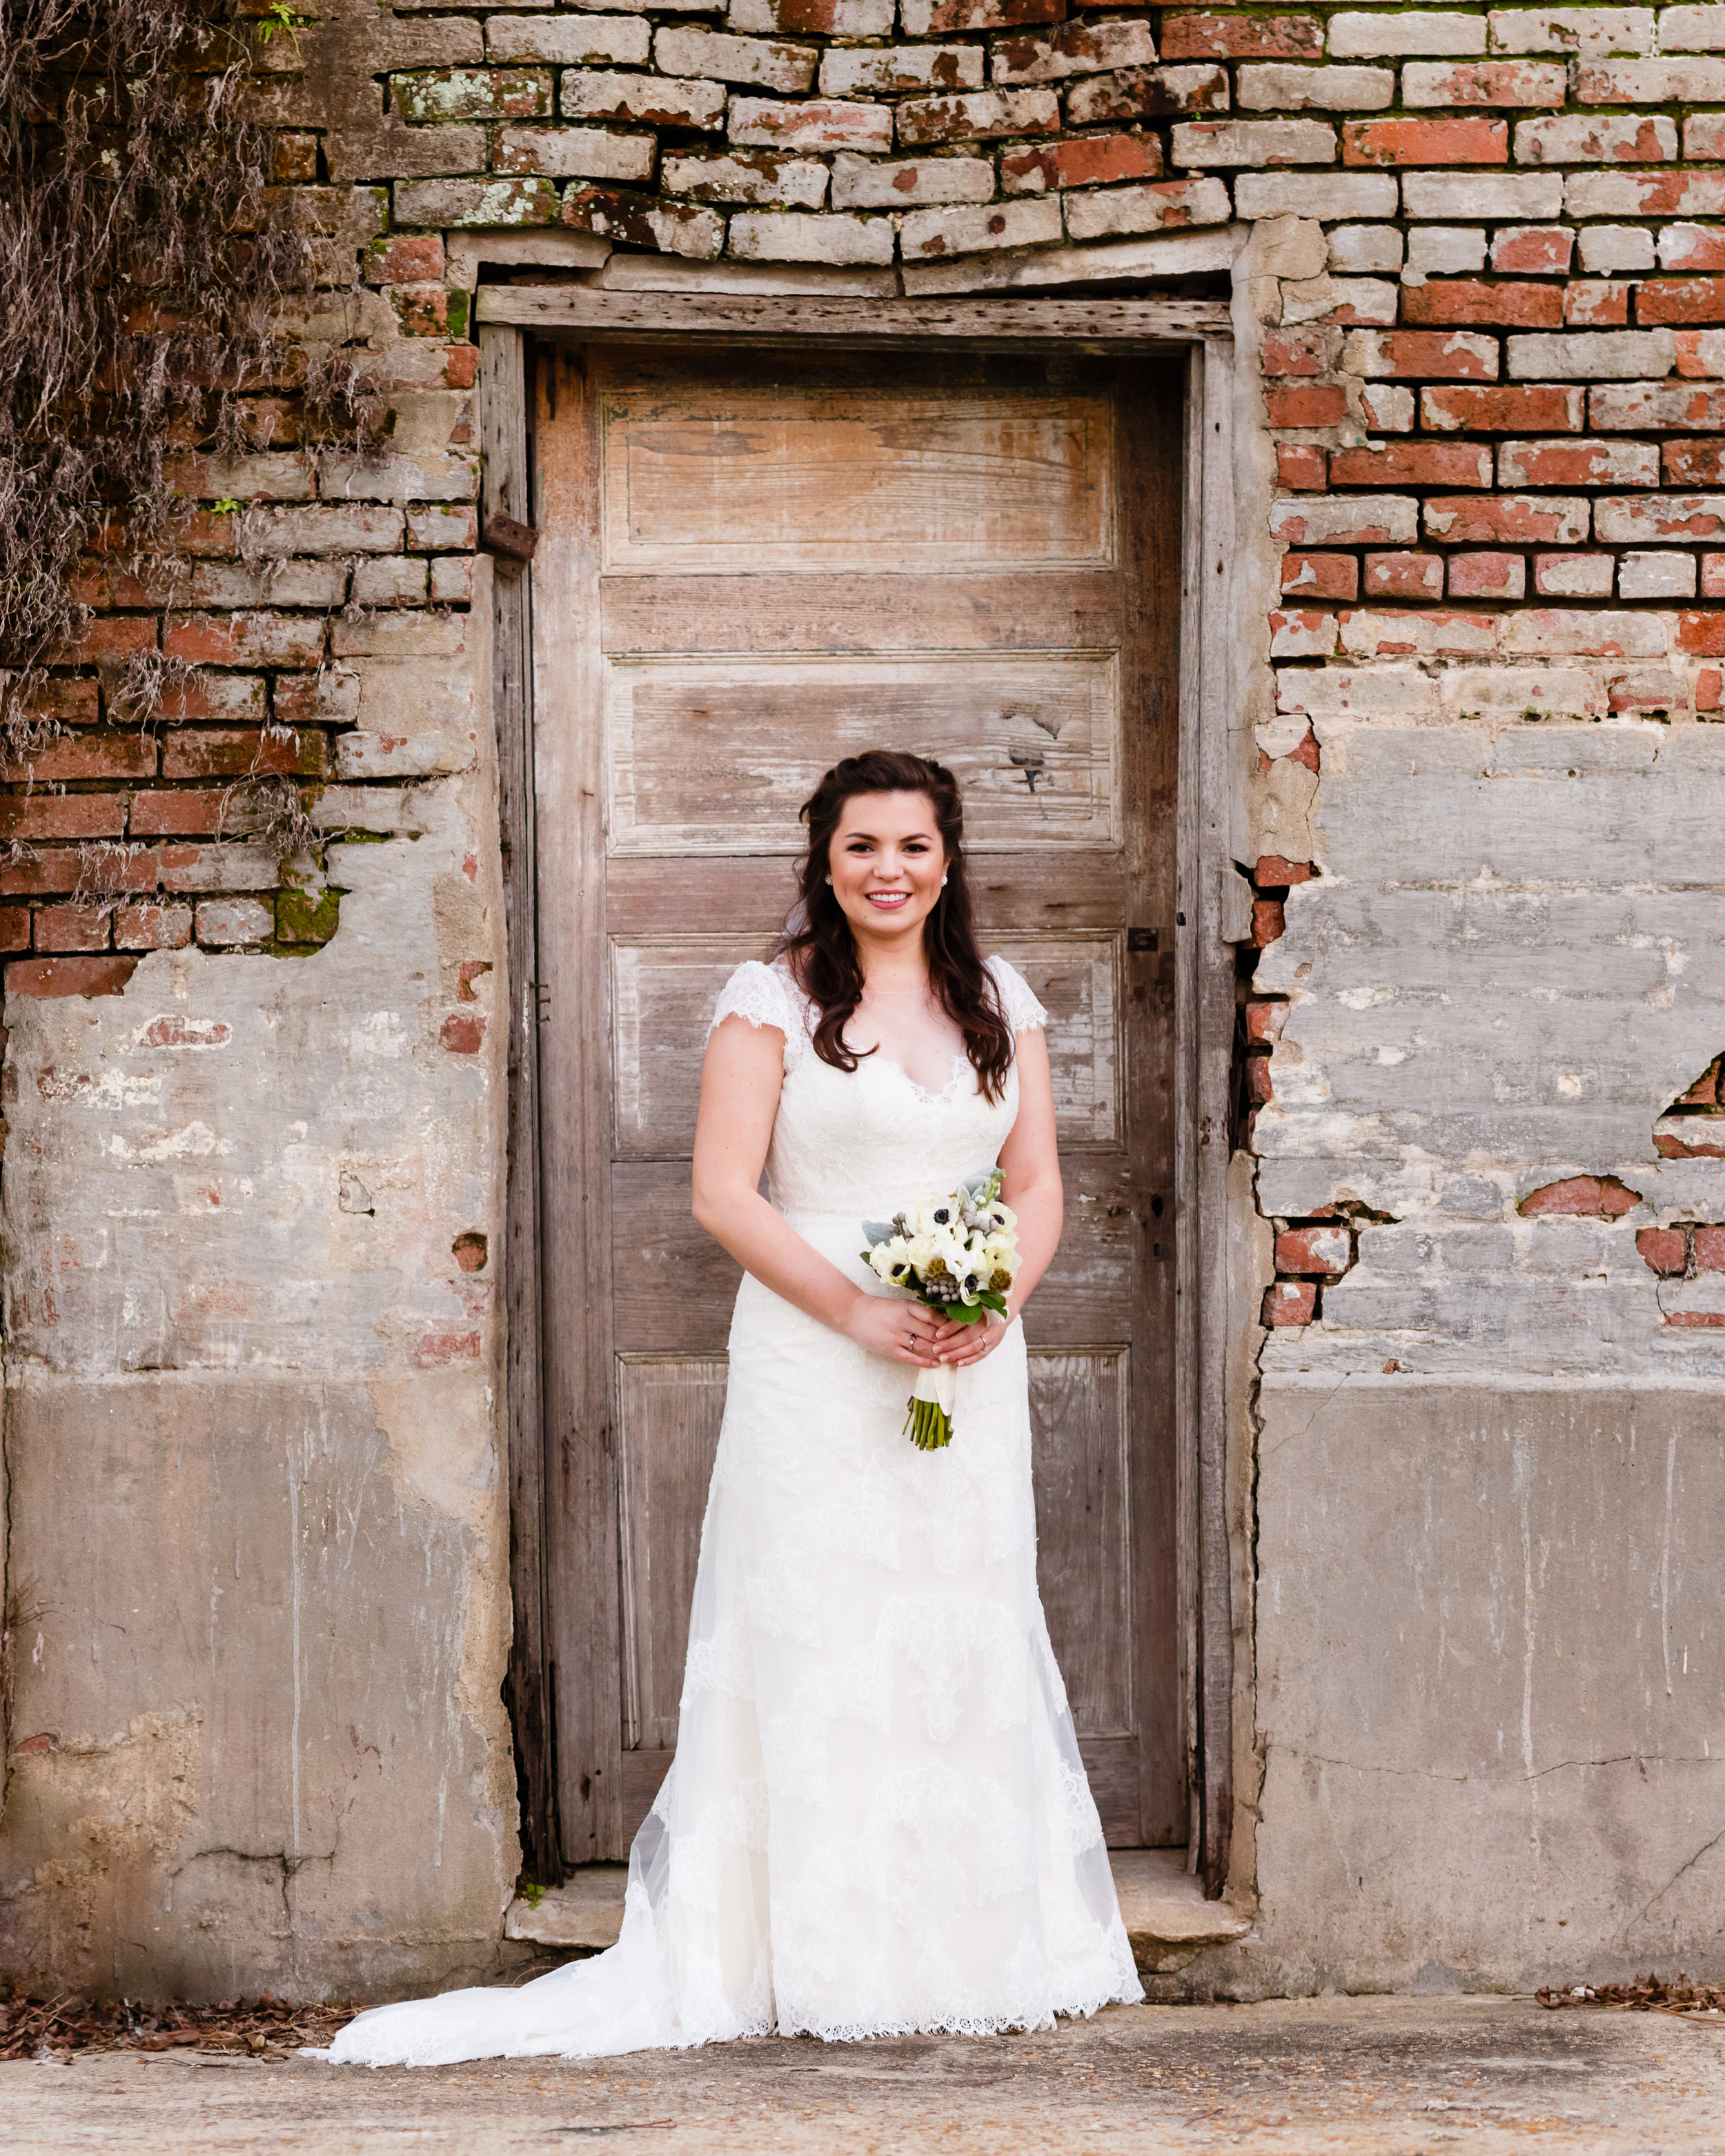 Bridal-wedding-portrait-lafayette-broussard-youngsville-photographer-10.jpg